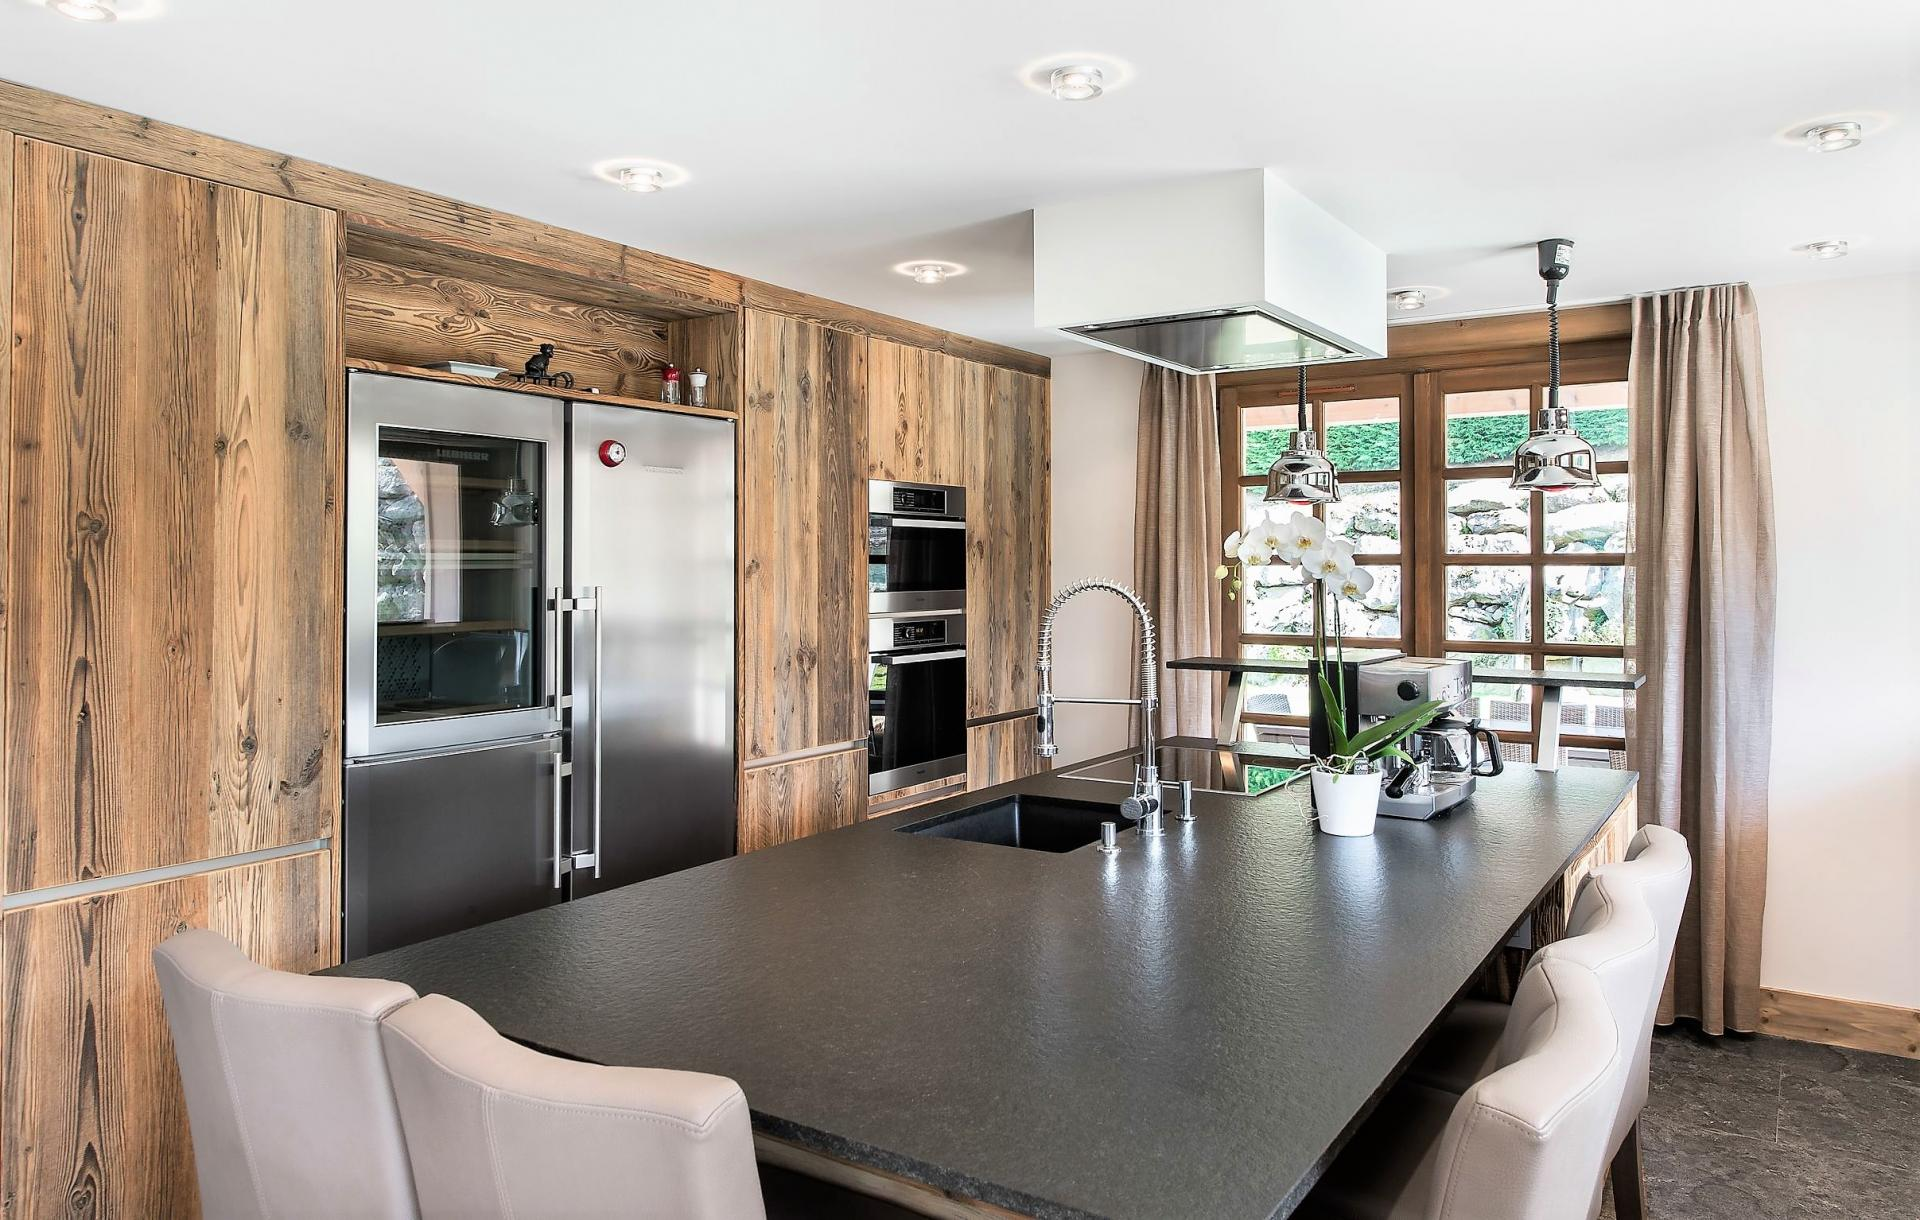 A BEAUTIFUL KITCHEN IN A SKI HOLIDAY CHALET IN MEGEVE